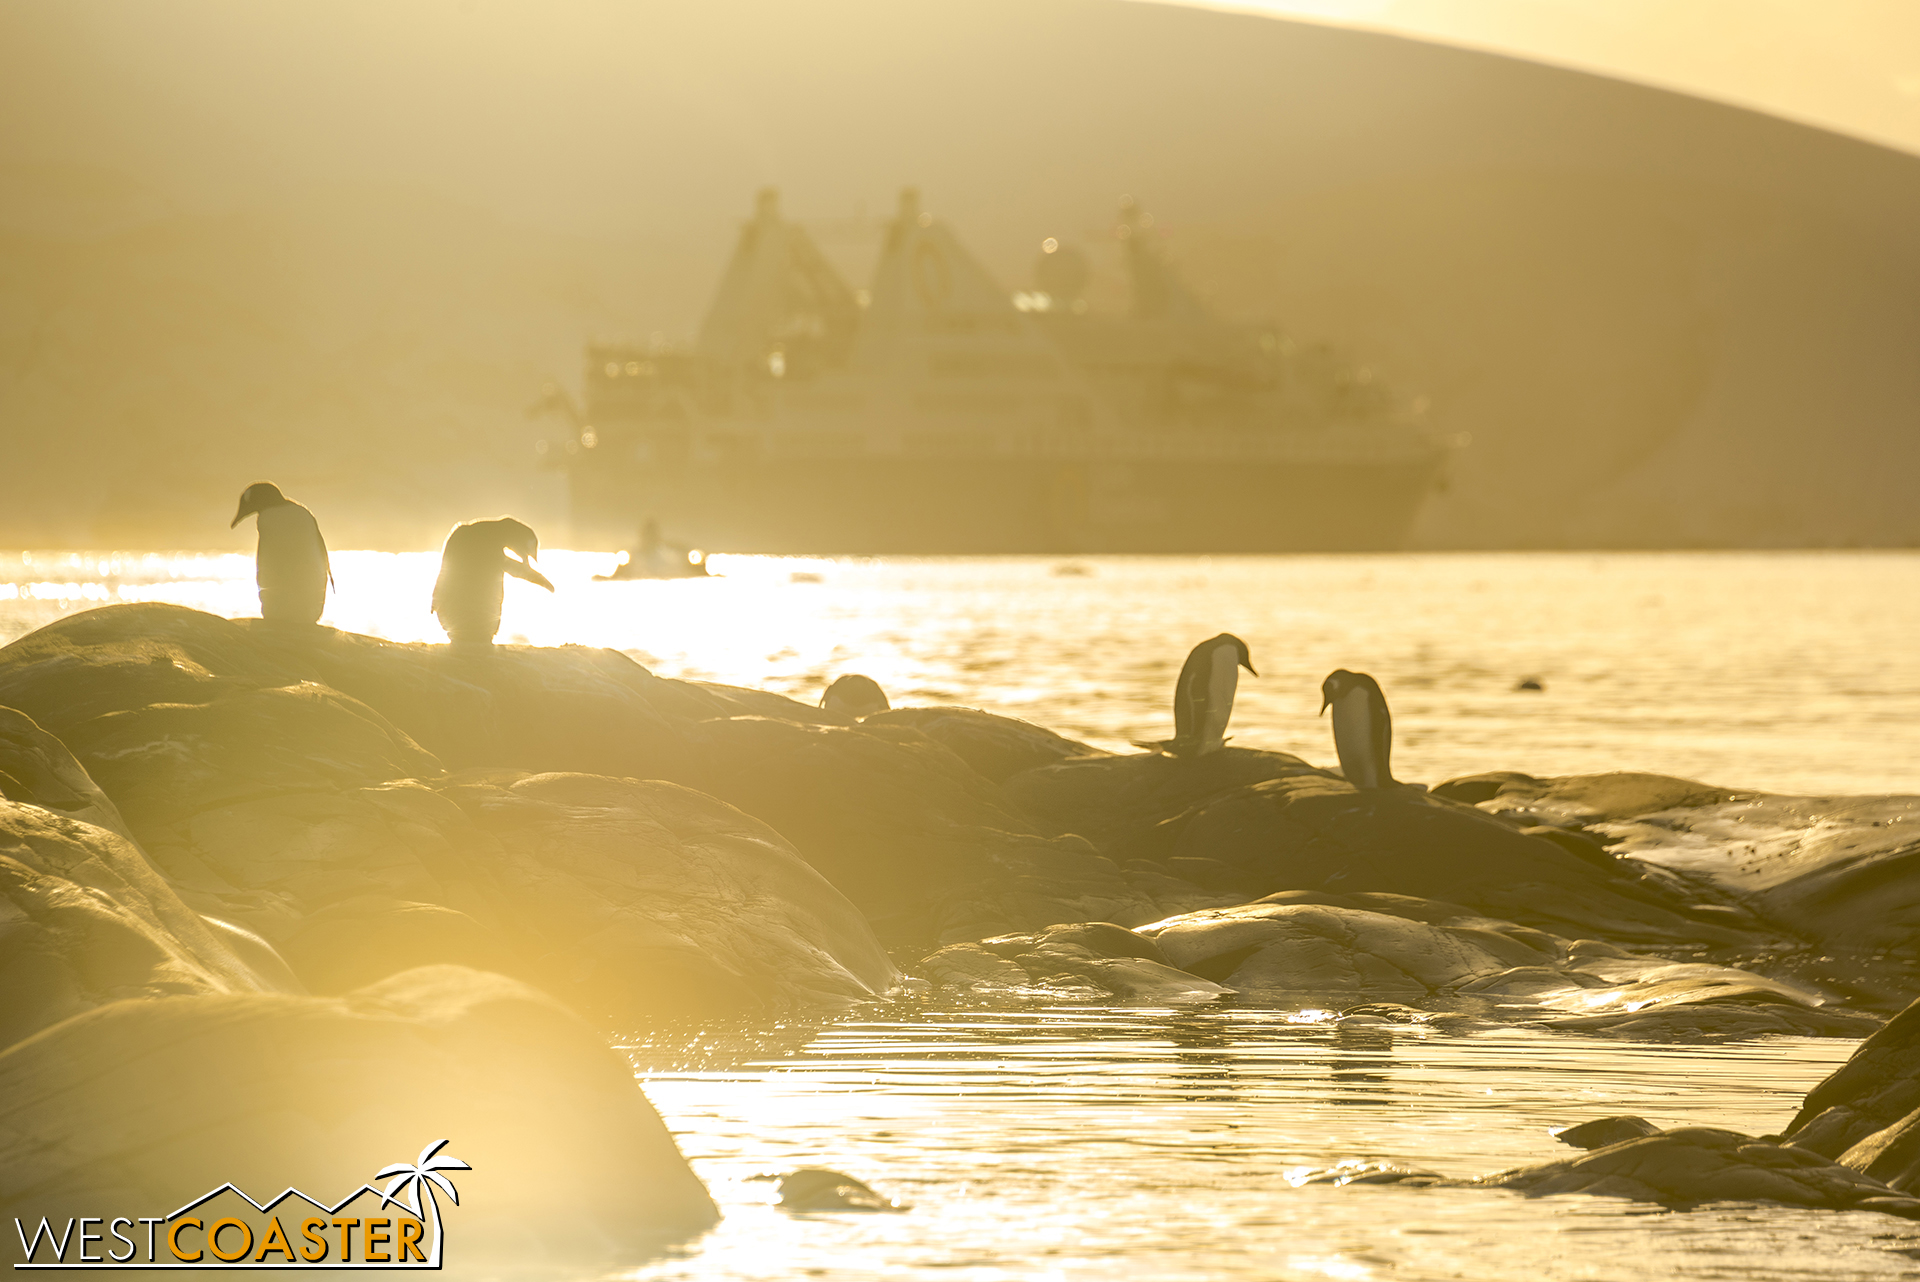 Penguins in the evening sun, with our  Ocean Diamond  in the background.